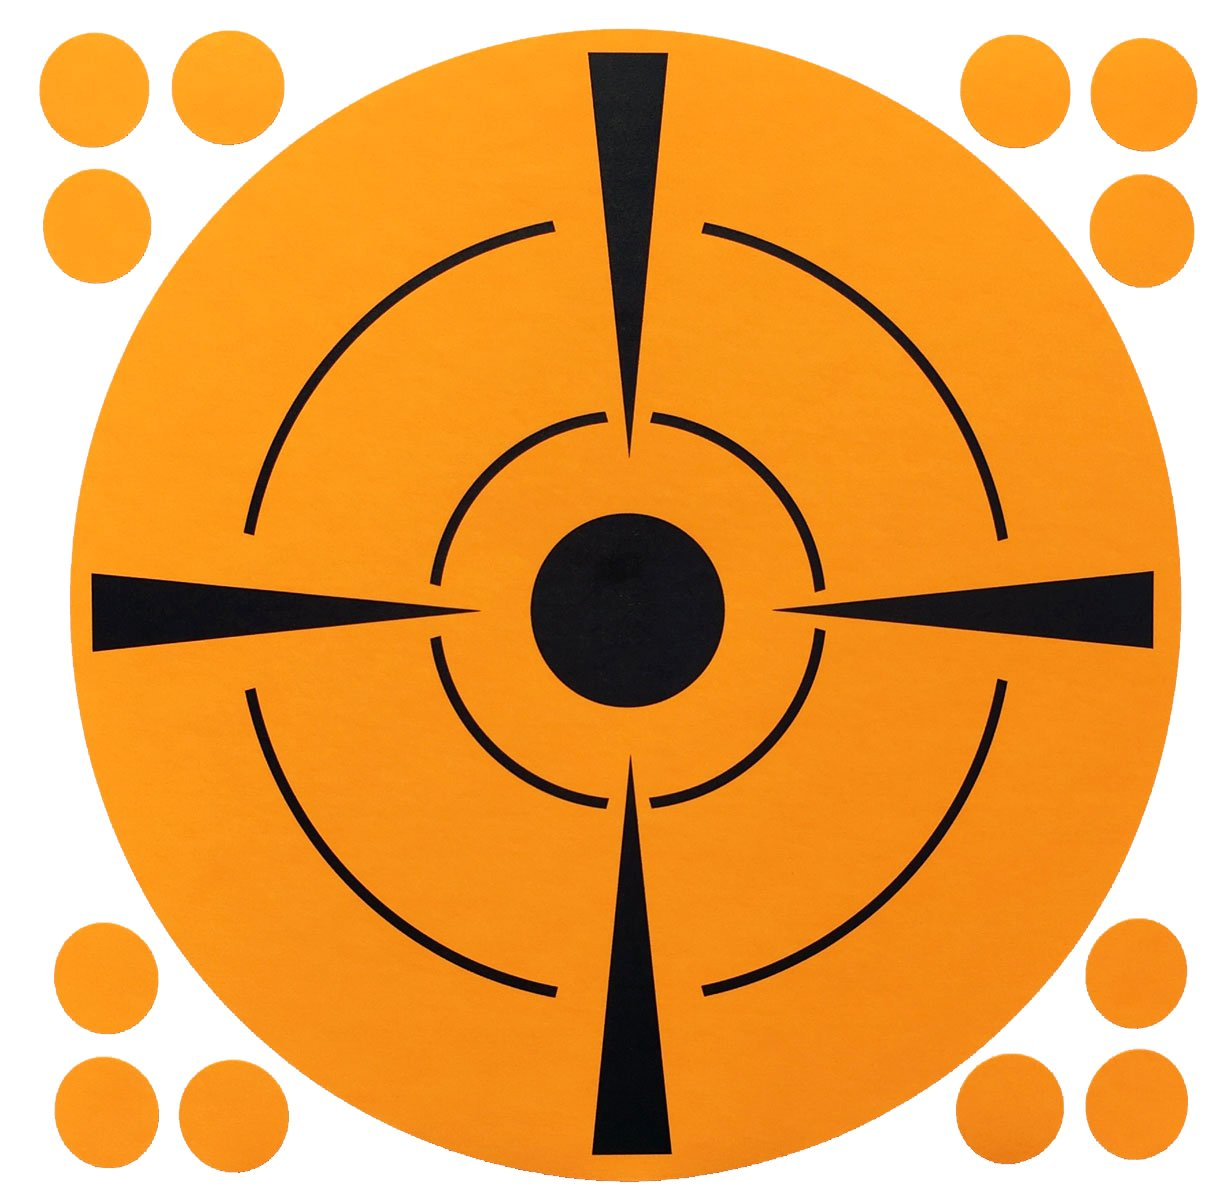 Fluorescent Orange with Black Circle Target Paster Stickers, 6 Inches Round, 50 Labels on a Roll